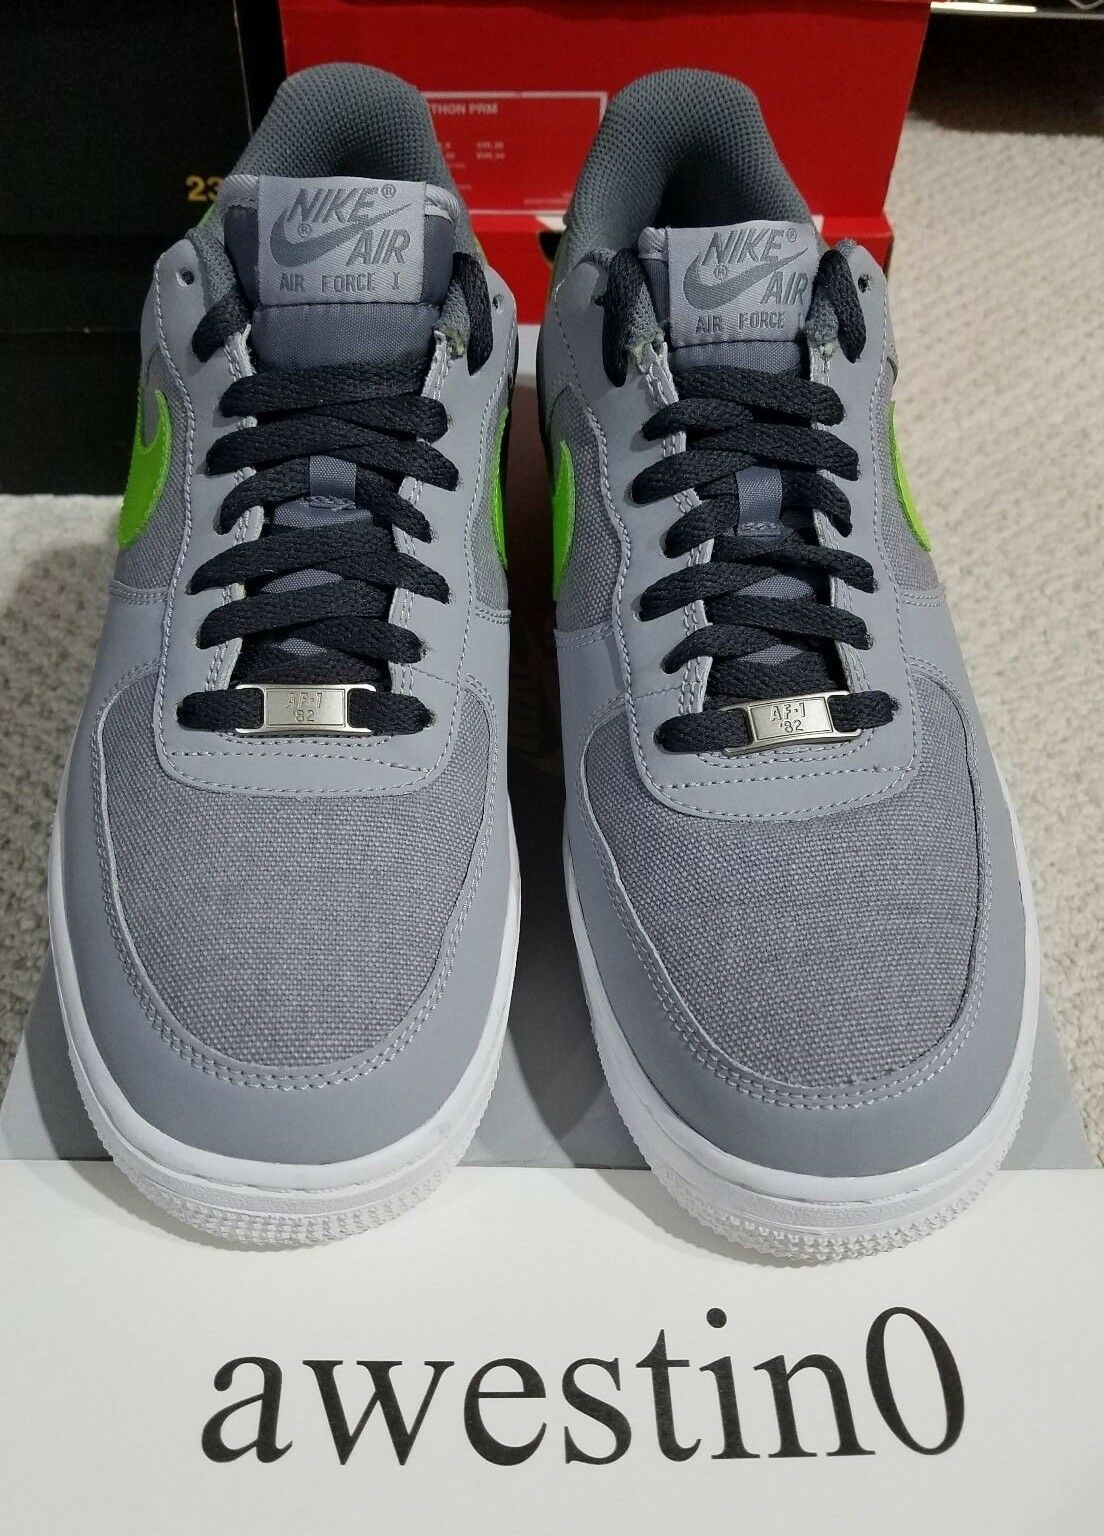 VNDS Nike Air Force 1 Low Wolf Grey/Action Green/White 488298 009 Size 9.5